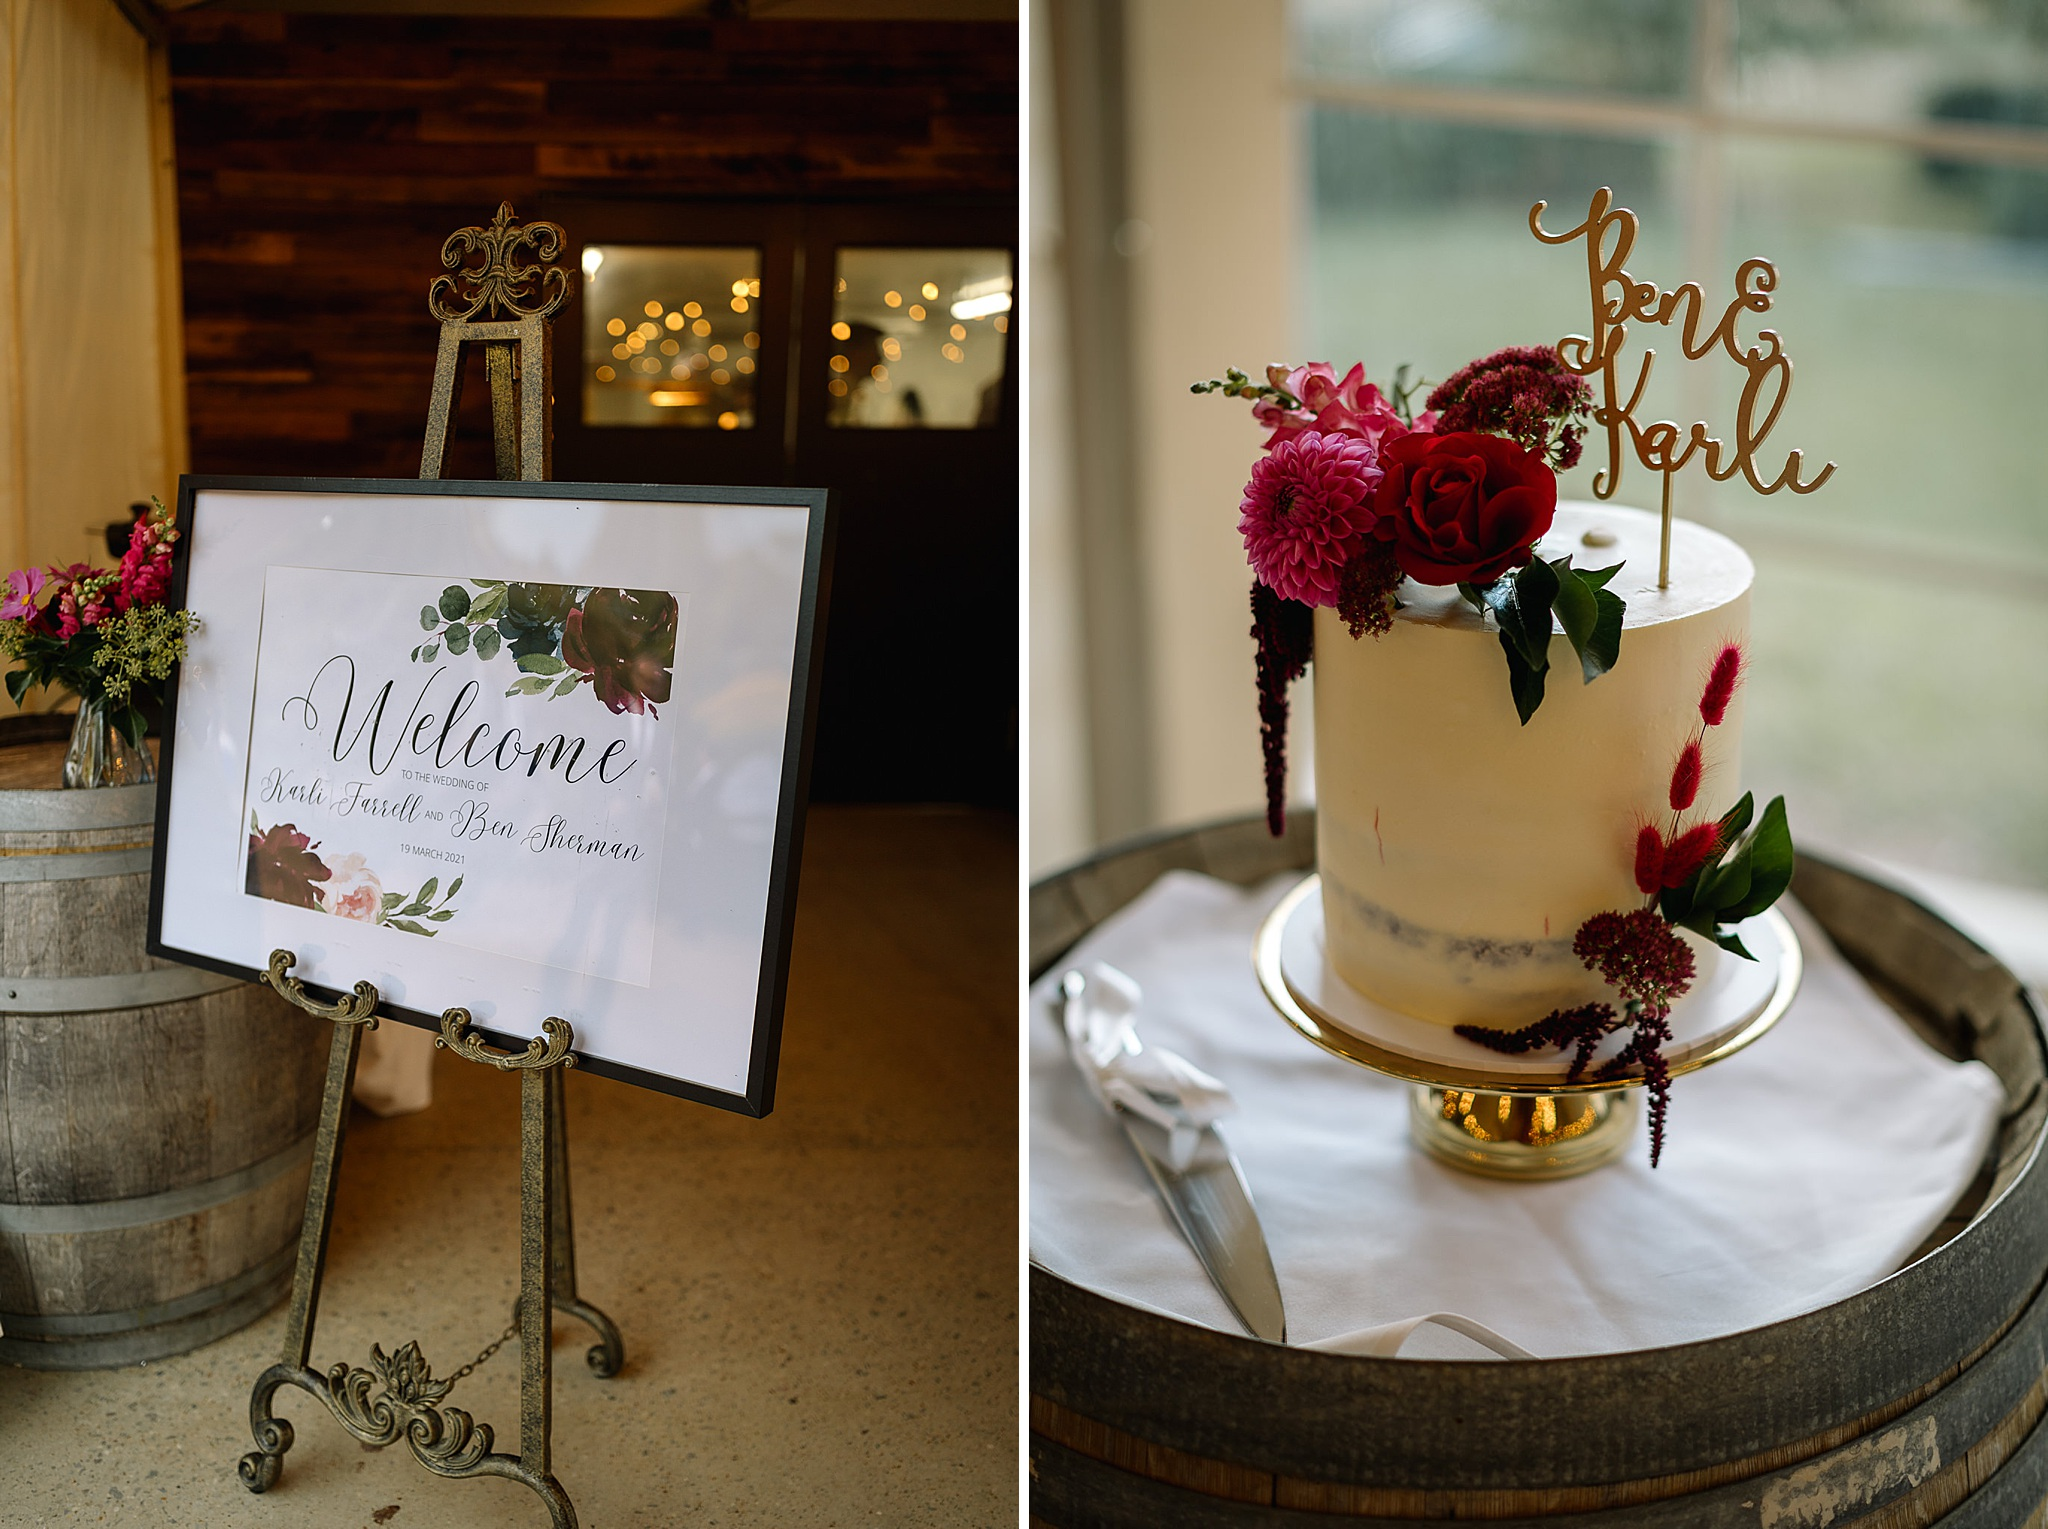 Barton flower bar,canberra florist,Canberra Photography,country wedding,Keepsakephoto by the Keeffes,ACT wedding photographer,ACT weddings,Canberra Wedding Photography,Canberra Wedding Photographer,canberra wedding,destination wedding,Poachers pantry,Poachers Pantry wedding,Wedding Inspiration,